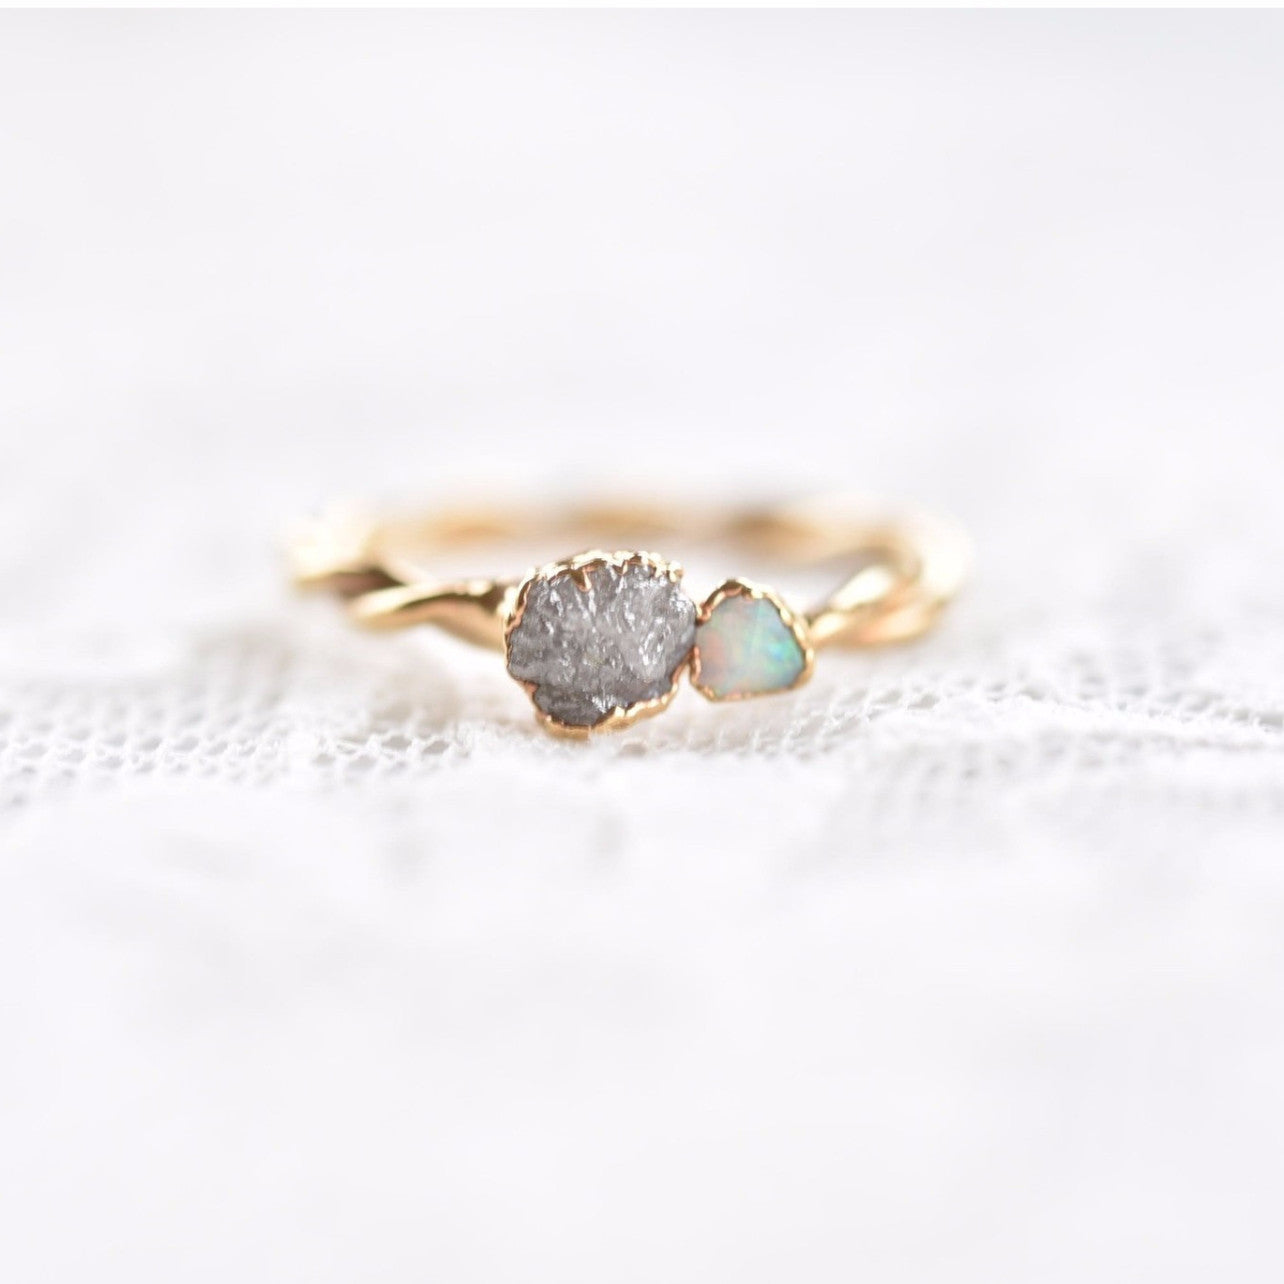 GOLD ROUGH DIAMOND AND RAW OPAL RING